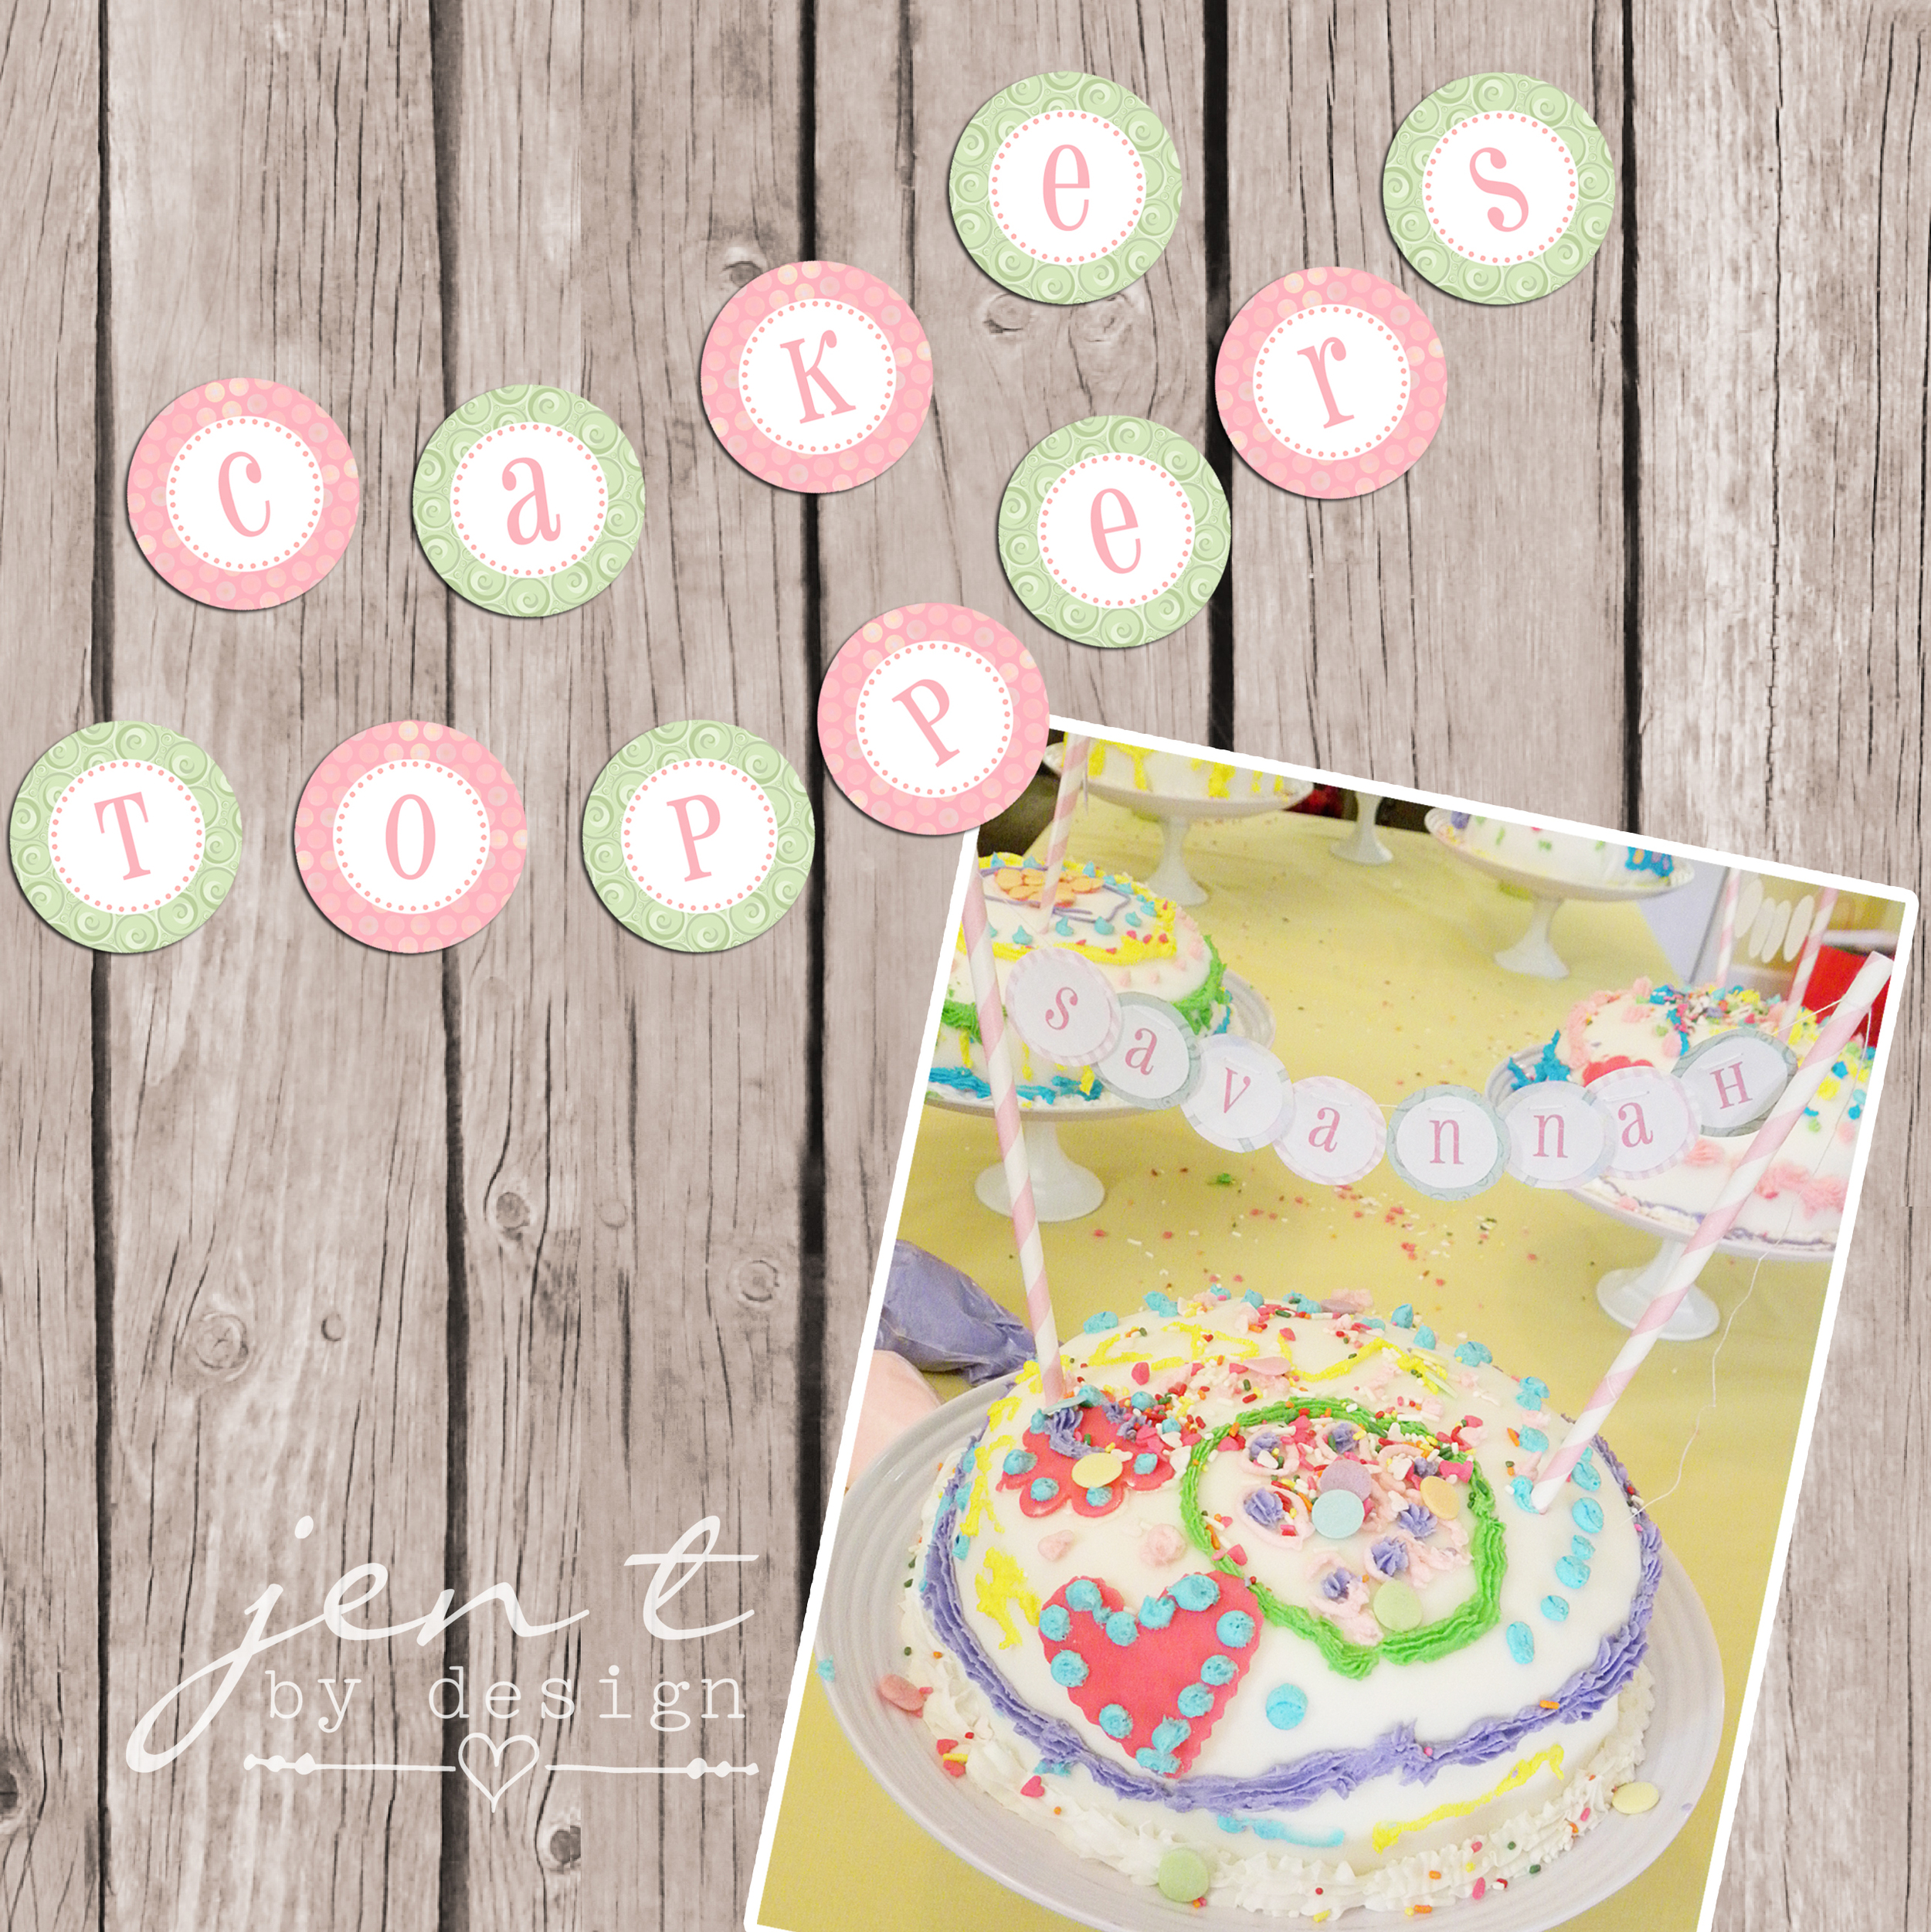 Baking Party Cake Toppers - mounted and watermarked copy.jpg